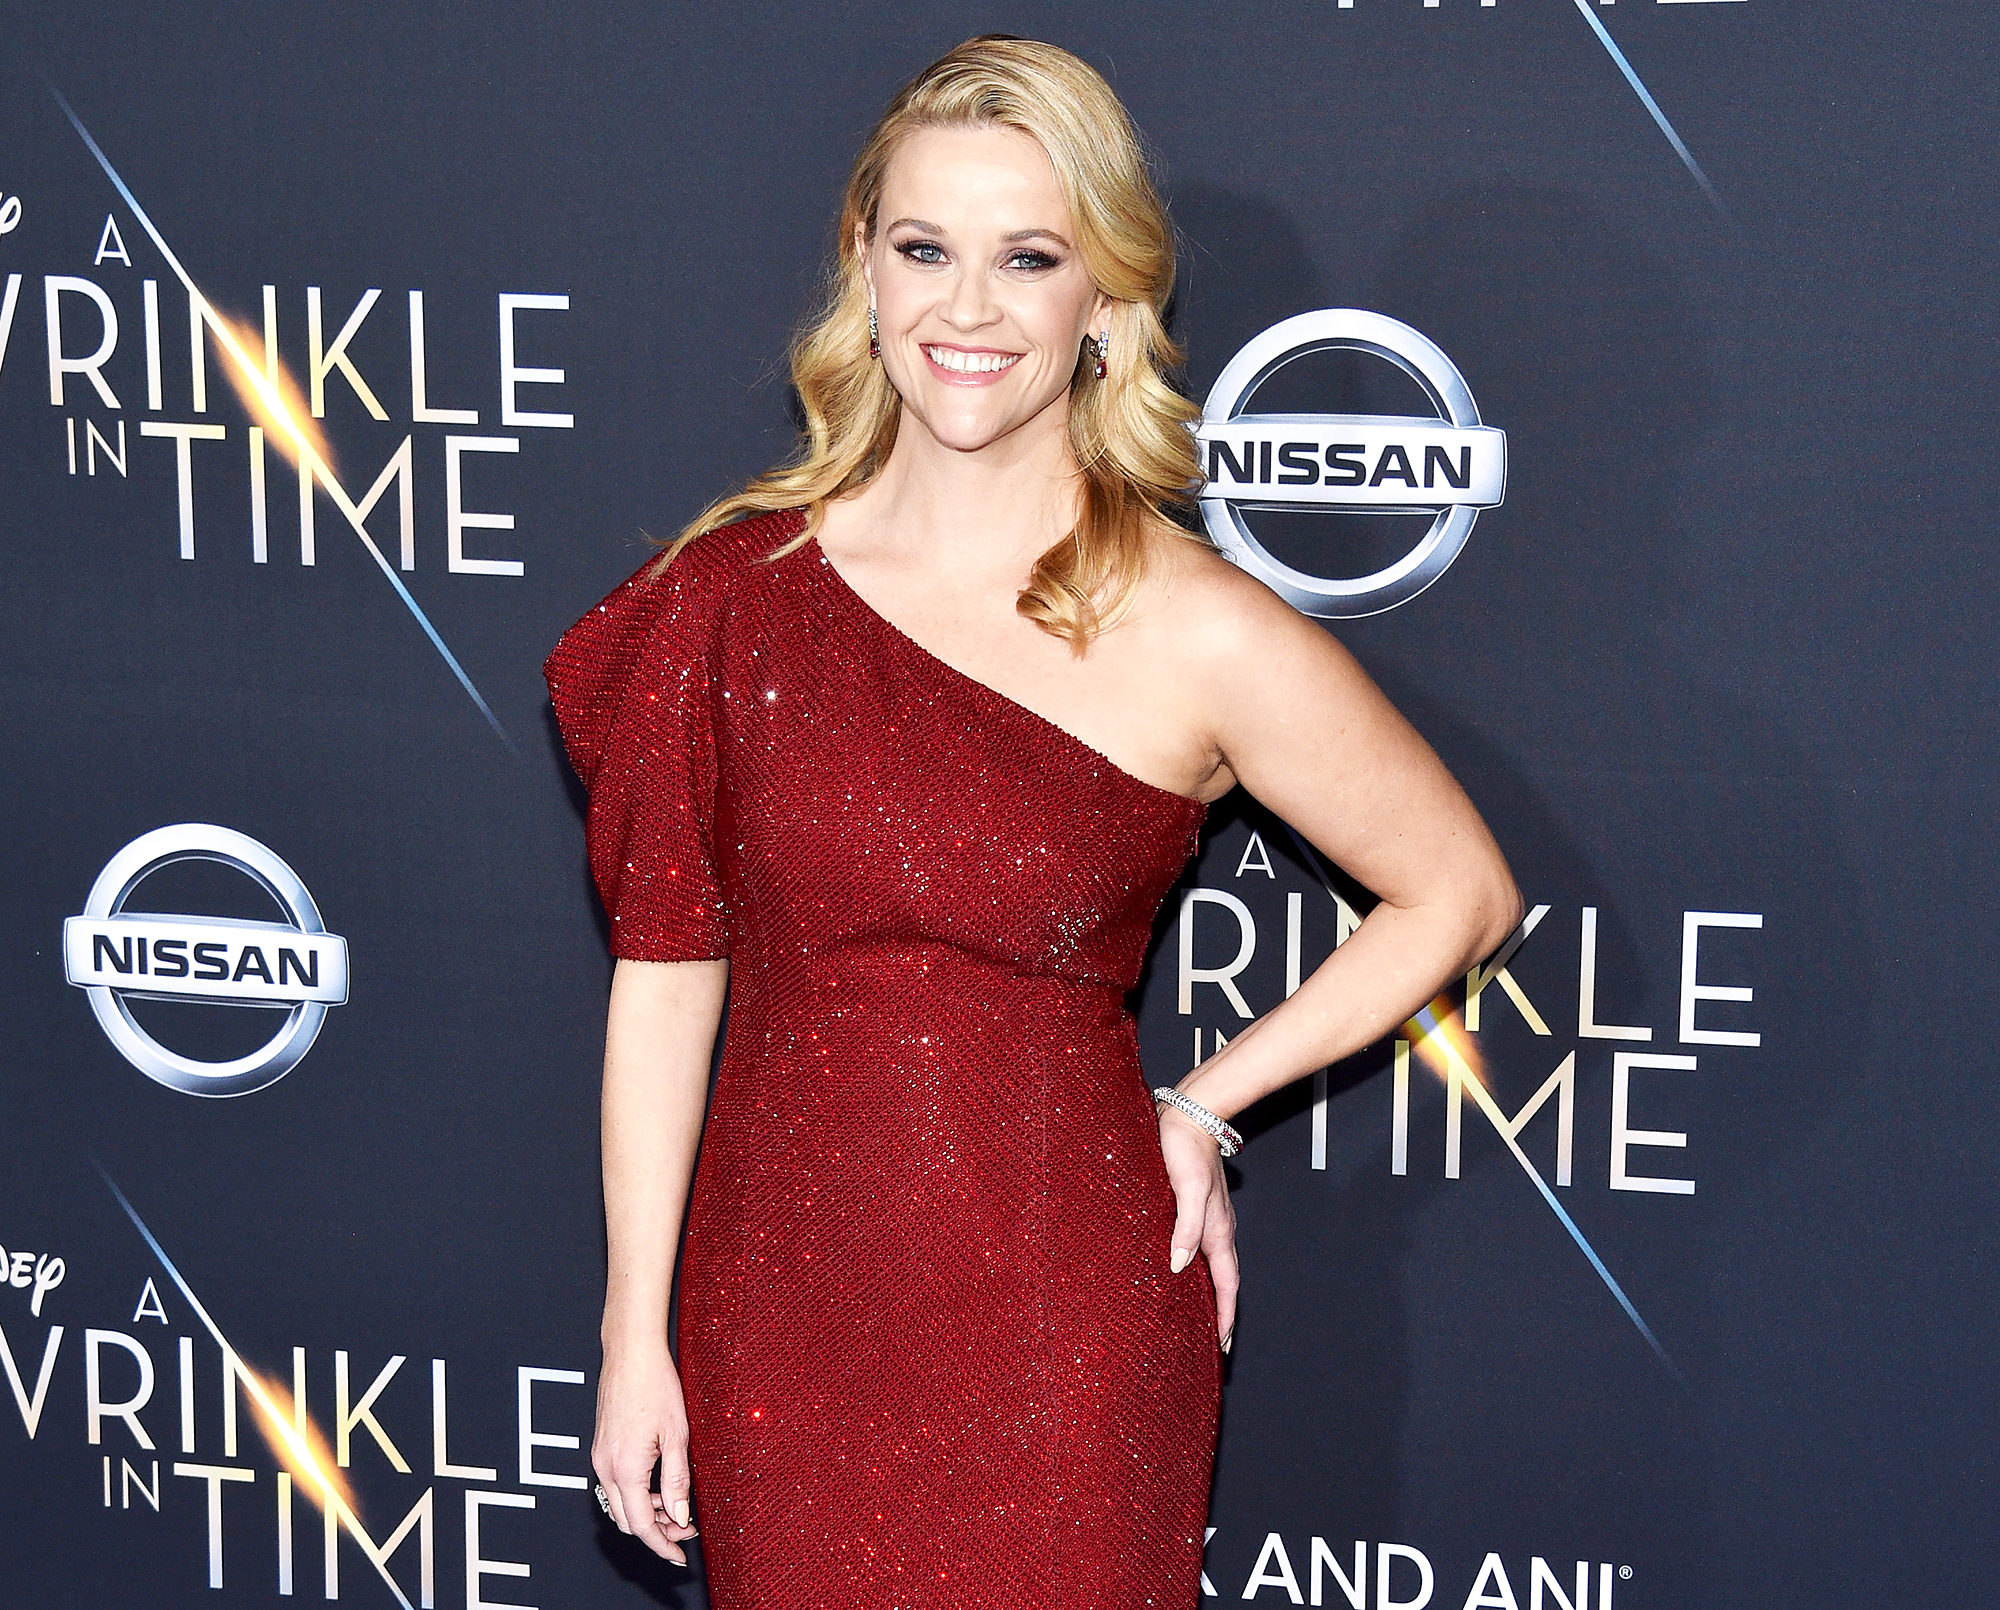 Reese Witherspoon Confirms 'Legally Blonde 3' In Most Elle Woods Way